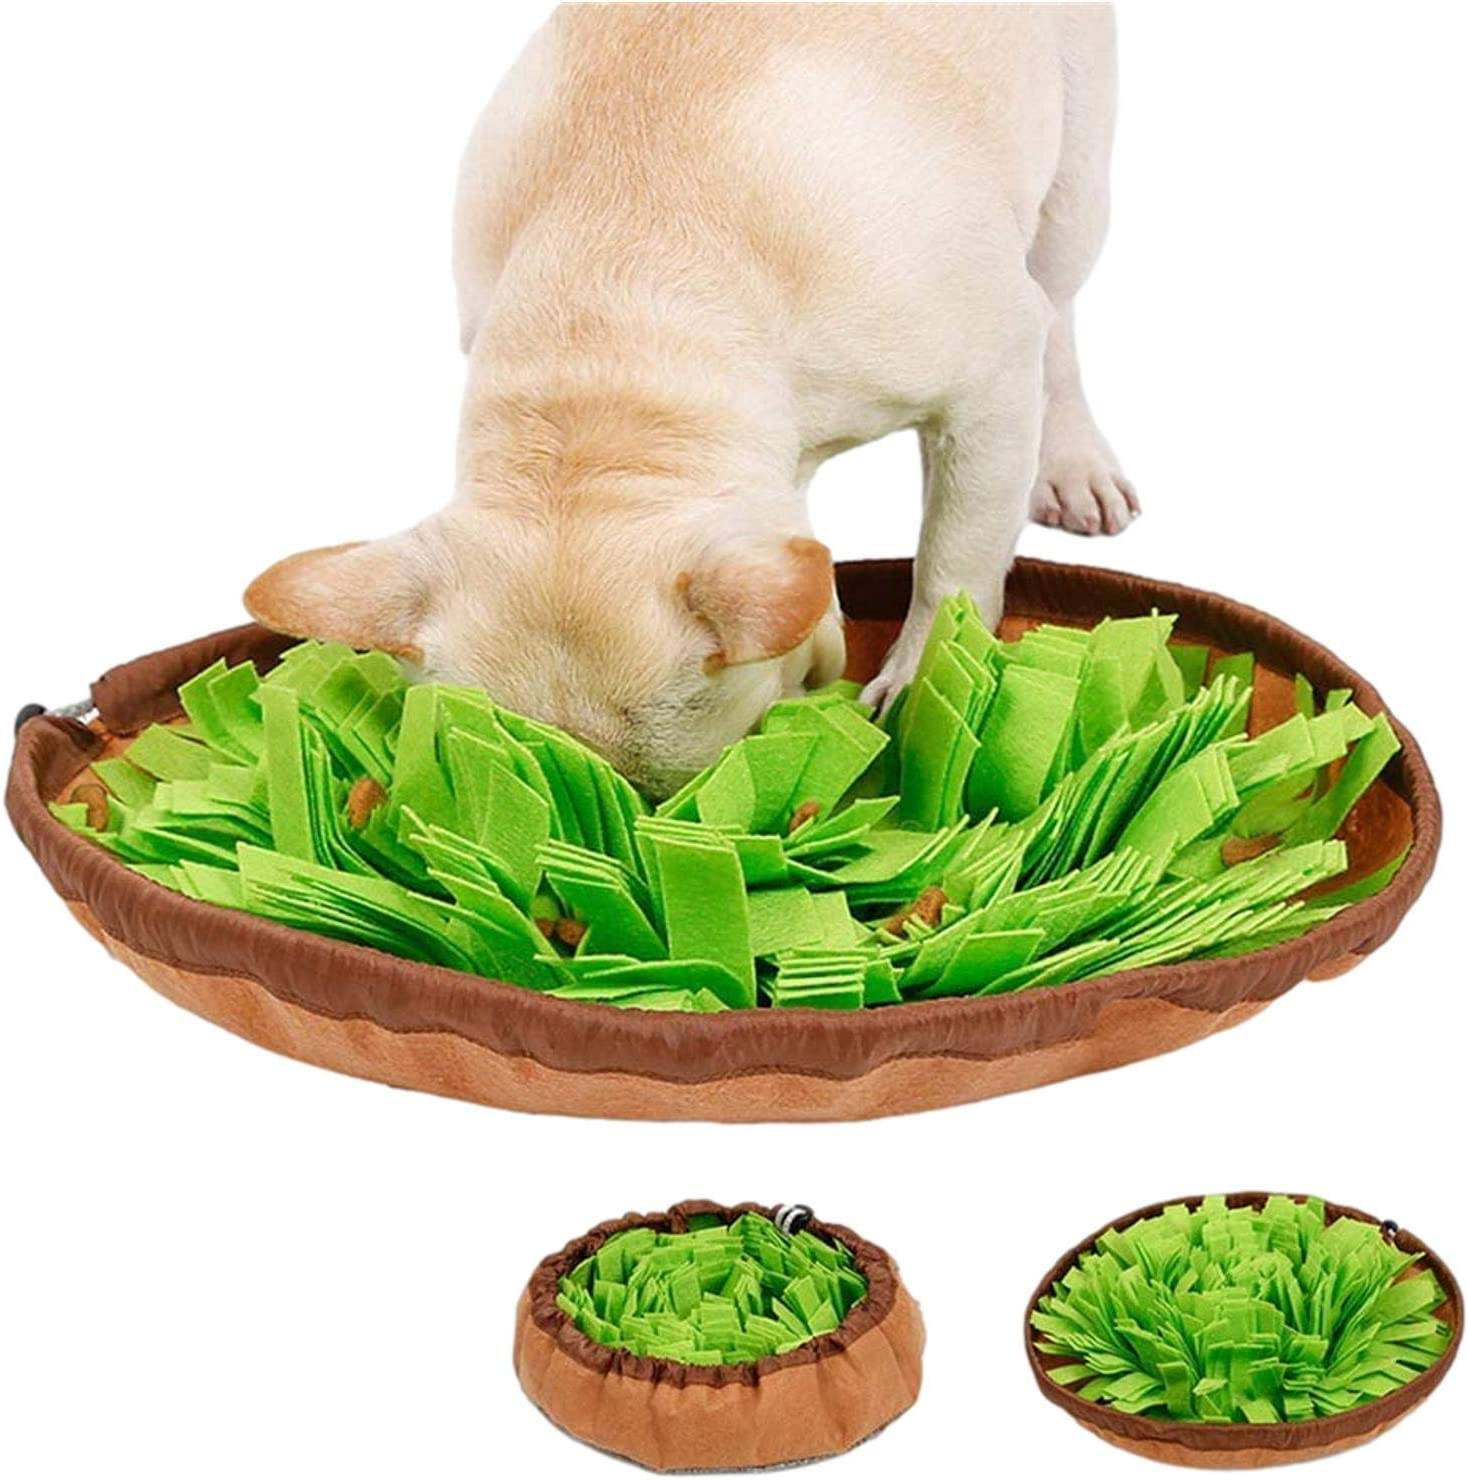 Snuffle Mat│Dog Toys Interactive│Dog Brain Stimulating Toys│Dog Feeding Mat Helps to Keep Dog's Brain's Active│Snuffle Mat for Dog's Small and Large│Encourages Foraging Skills and Stress Release